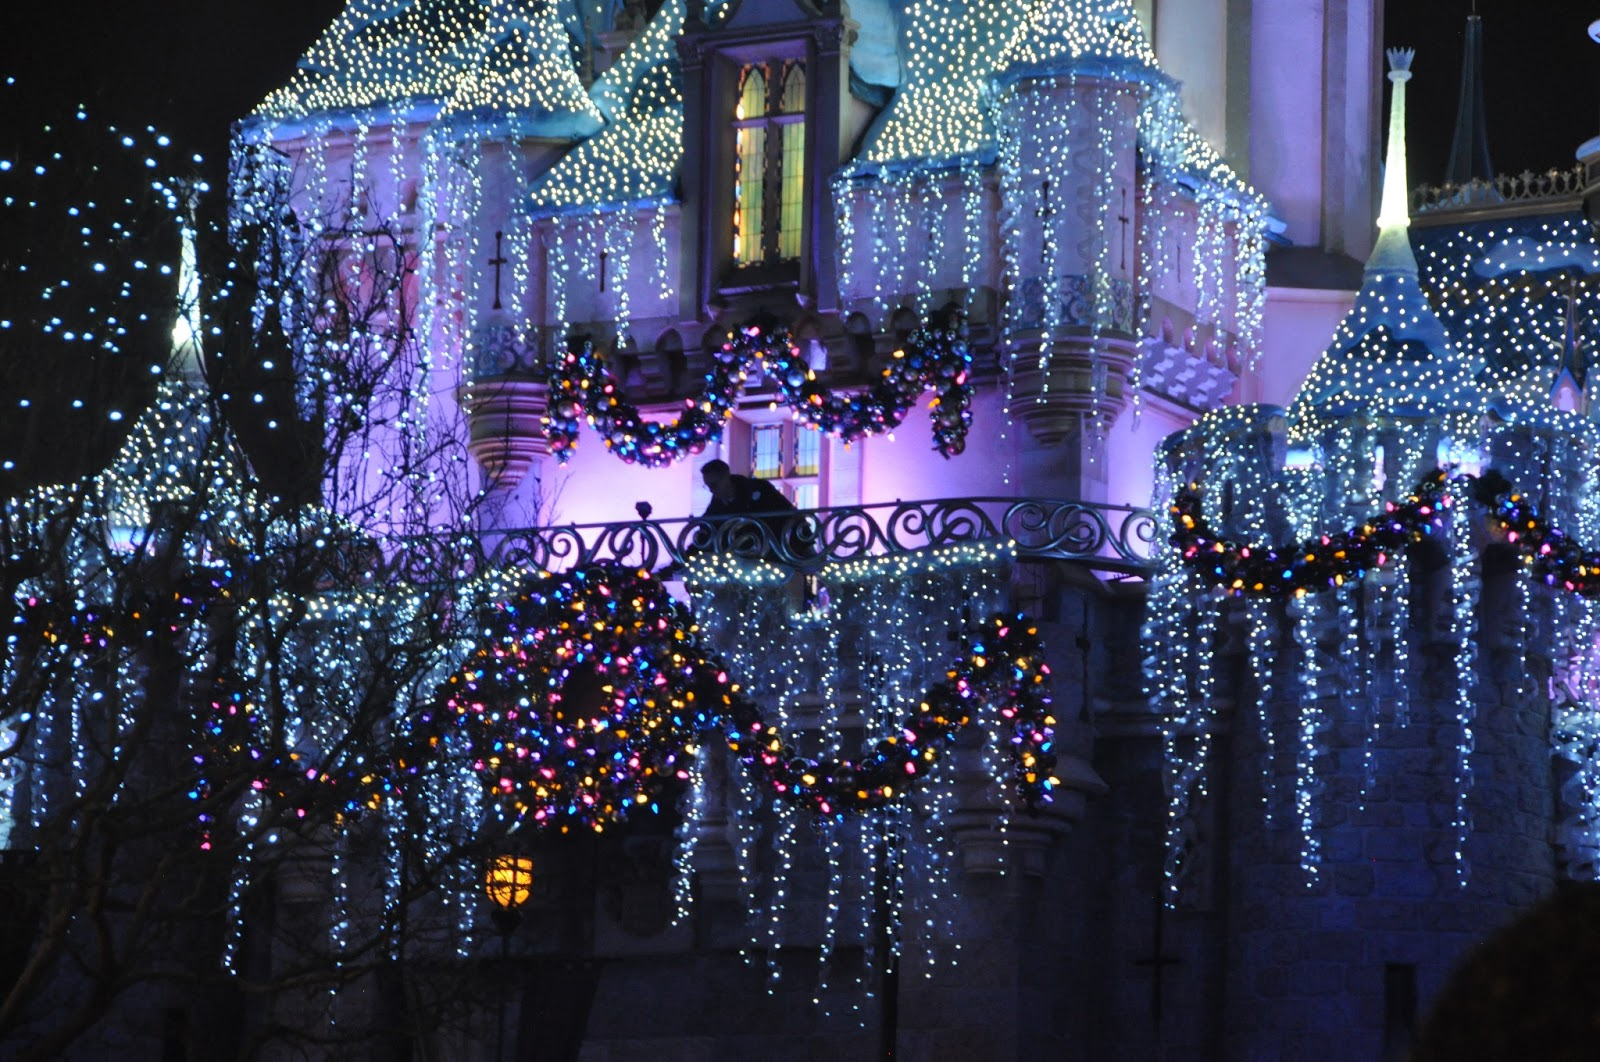 Disney, Disneyland Christmas, Disney Christmas, Disneyland, Disney fan, Disney lover, magical kingdom, what to do at Disneyland, Disney fashion, California adventure, California advenure food, whre to eat at California adventure, Disney apparel, Disney food, Disney food review, mickey mouse ears, where to eat at Disneyland, fashion blog, fashion blogger, style blog, style blogger, mens fashion, mens fashion blog, mens style, mens style blog, womens style blog, anthropologie ootd blog, anthropologie ootd, anthropologie, ootd, mens ootd, womens ootd,